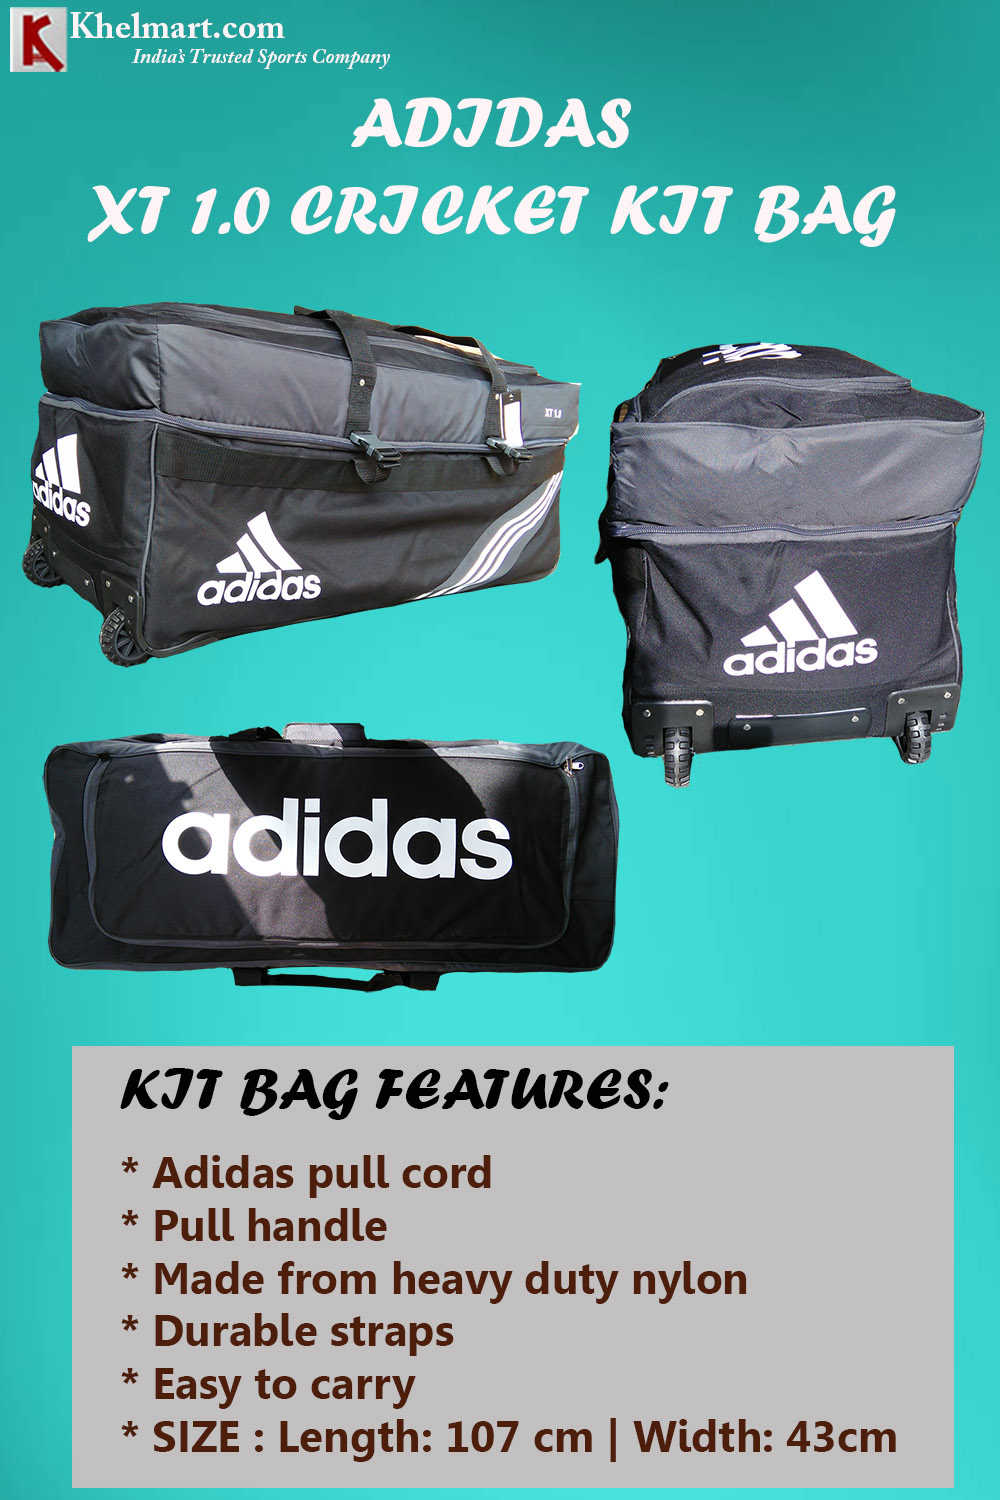 Adidas XT 1Point0 Cricket Kit bag